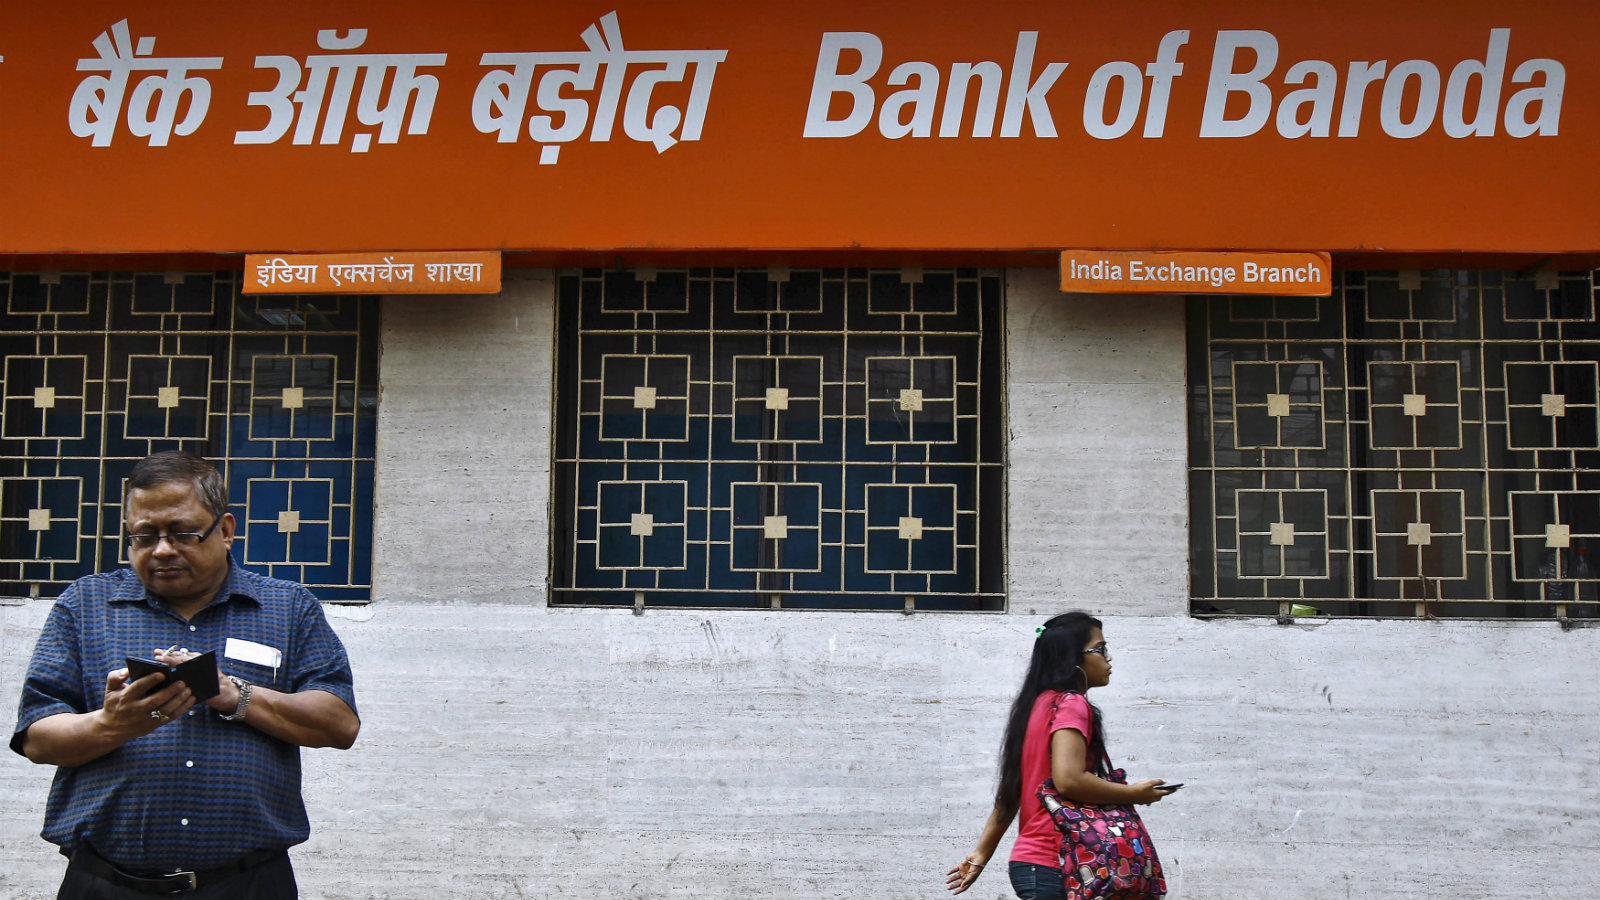 A man uses his mobile phone as a commuter walks past an advertisement of Bank of Baroda in Kolkata